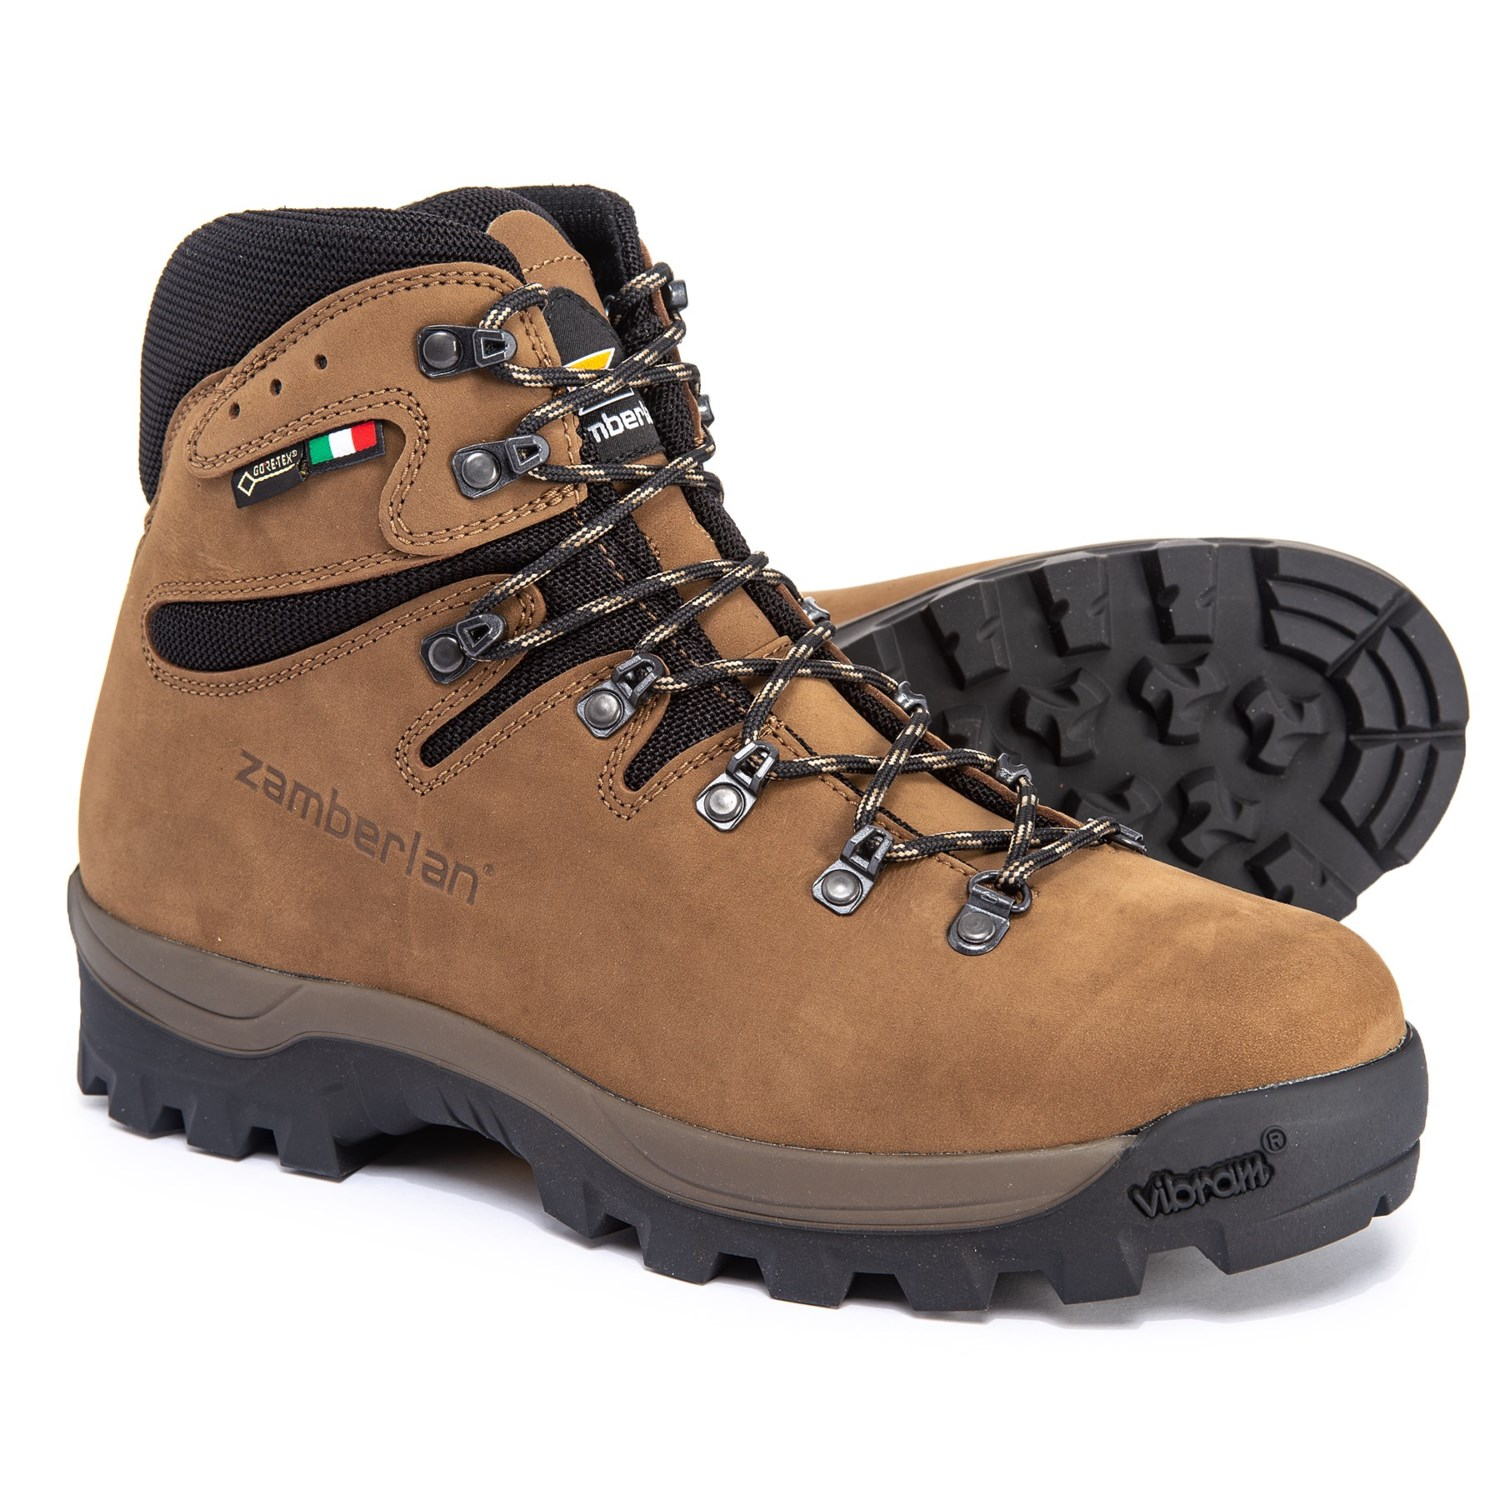 7a6764a7d19 Zamberlan Made in Italy Duran Gore-Tex® Hiking Boots - Waterproof, Leather  (For Men)